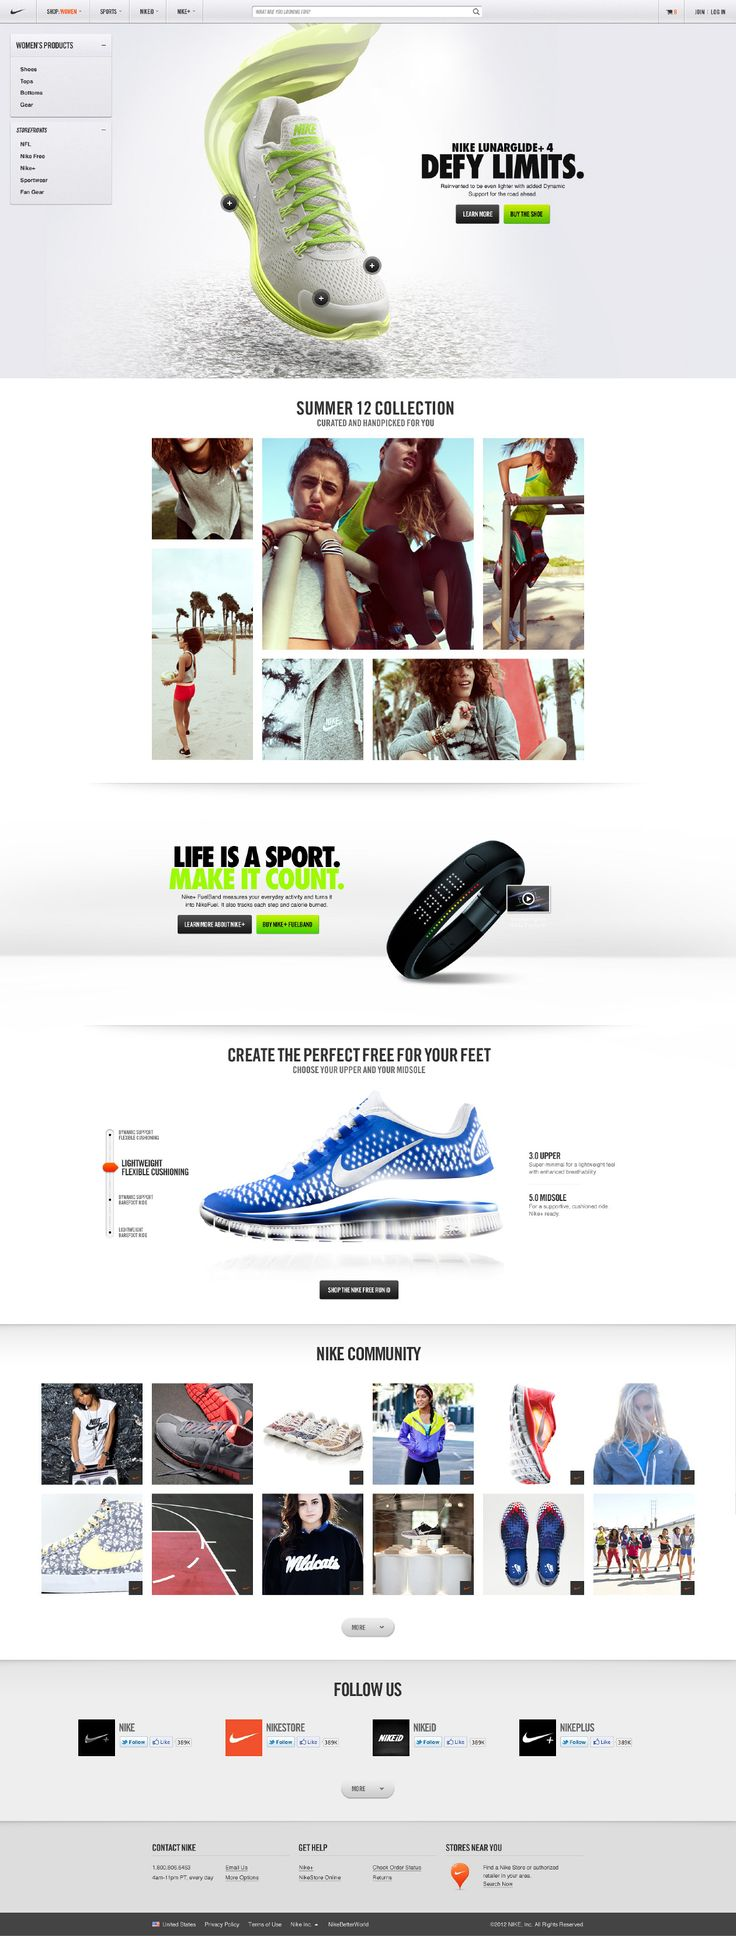 Nike Store - Hoshi Ludwig - Direction and Design